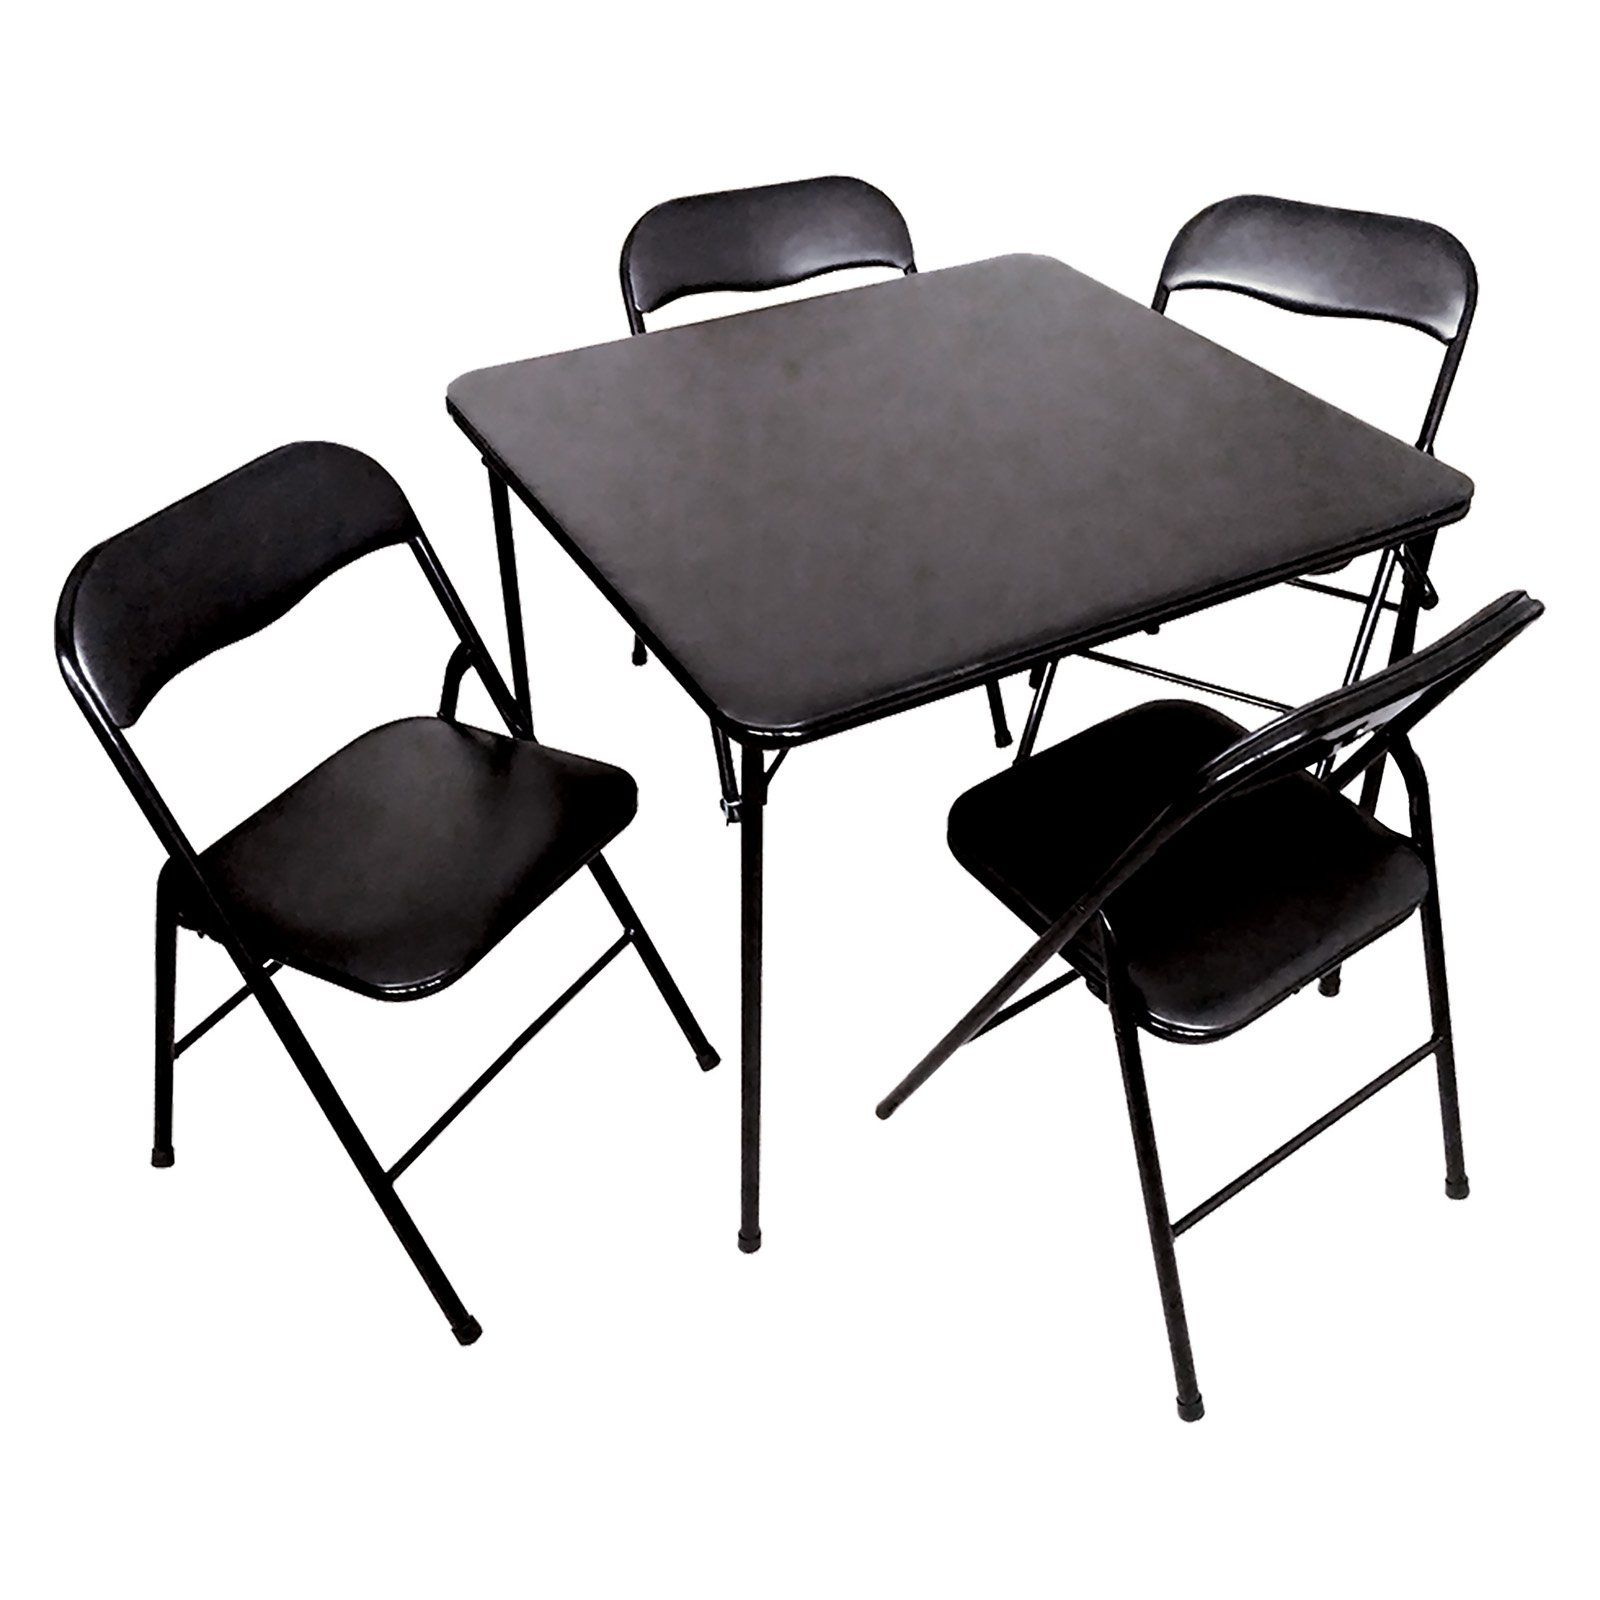 Pdg 5 Piece Folding Card Table Set Card Table Chairs Folding